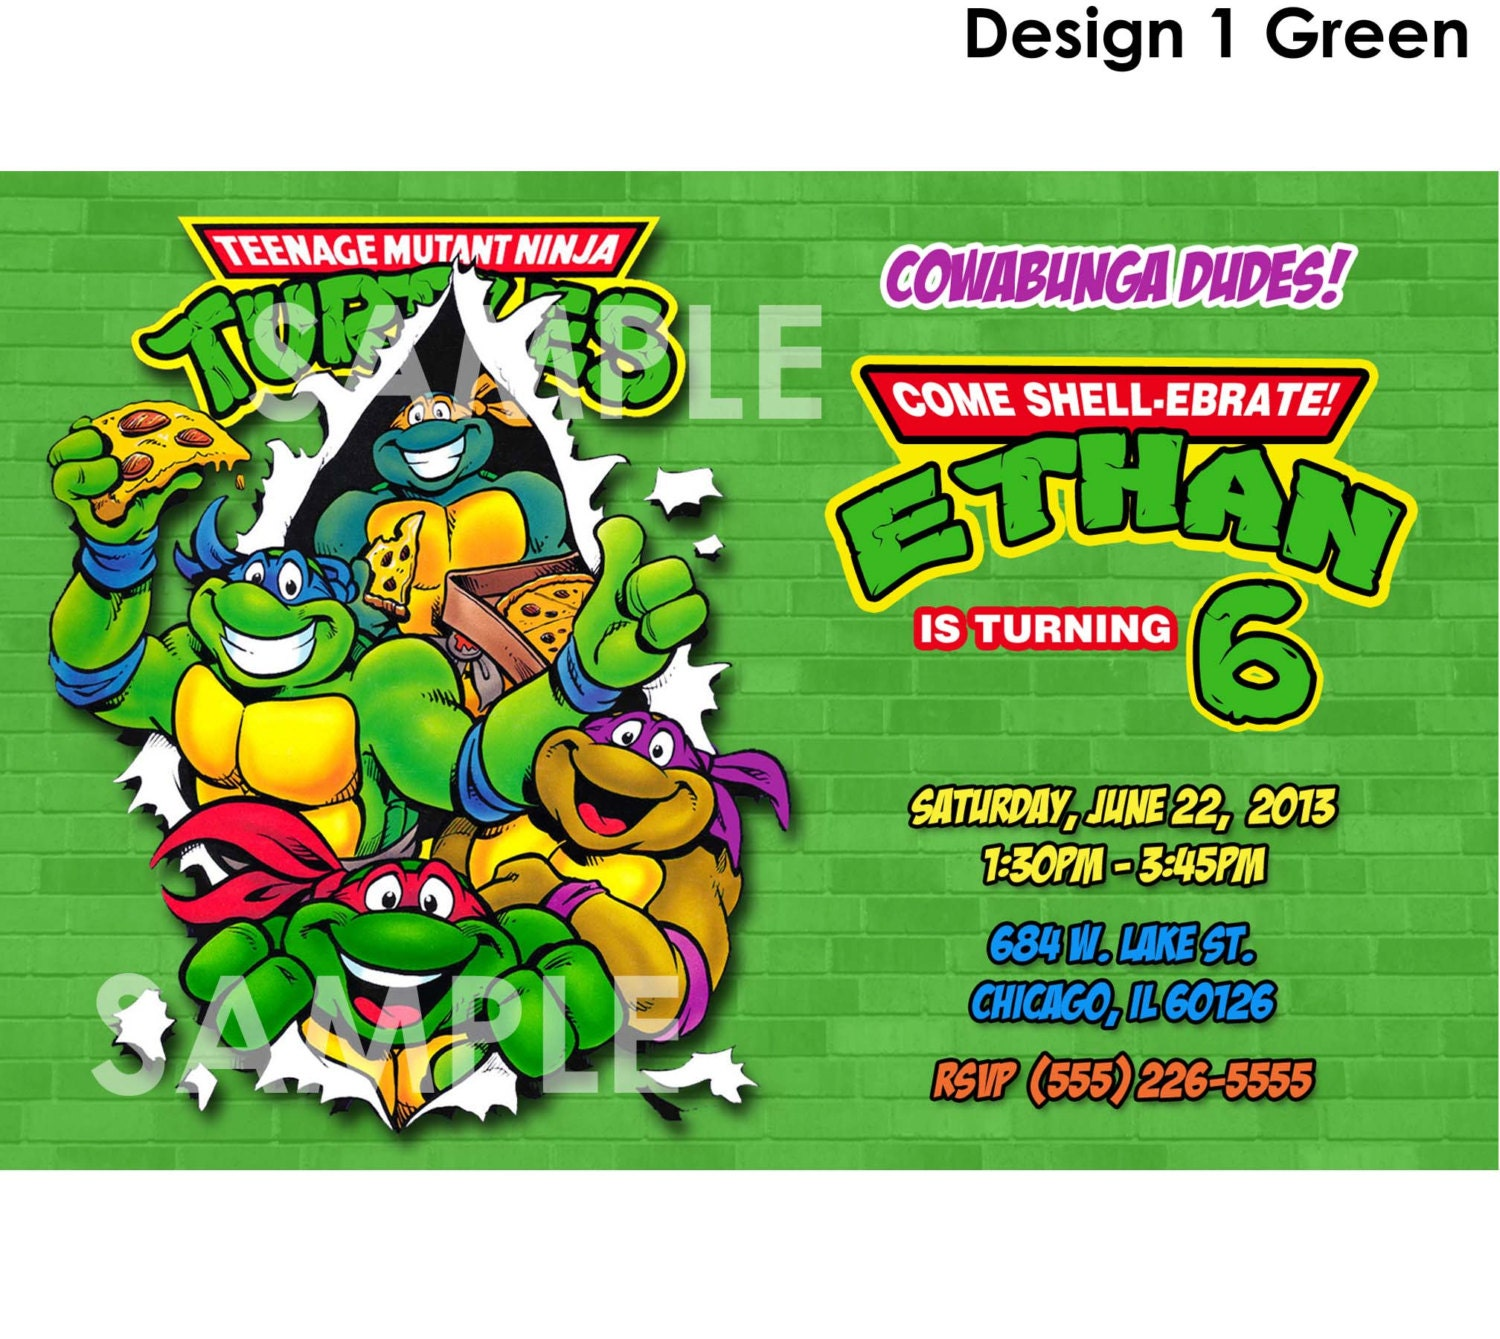 image relating to Ninja Turtles Invitations Printable identified as Ninja Turtle Birthday Invitation